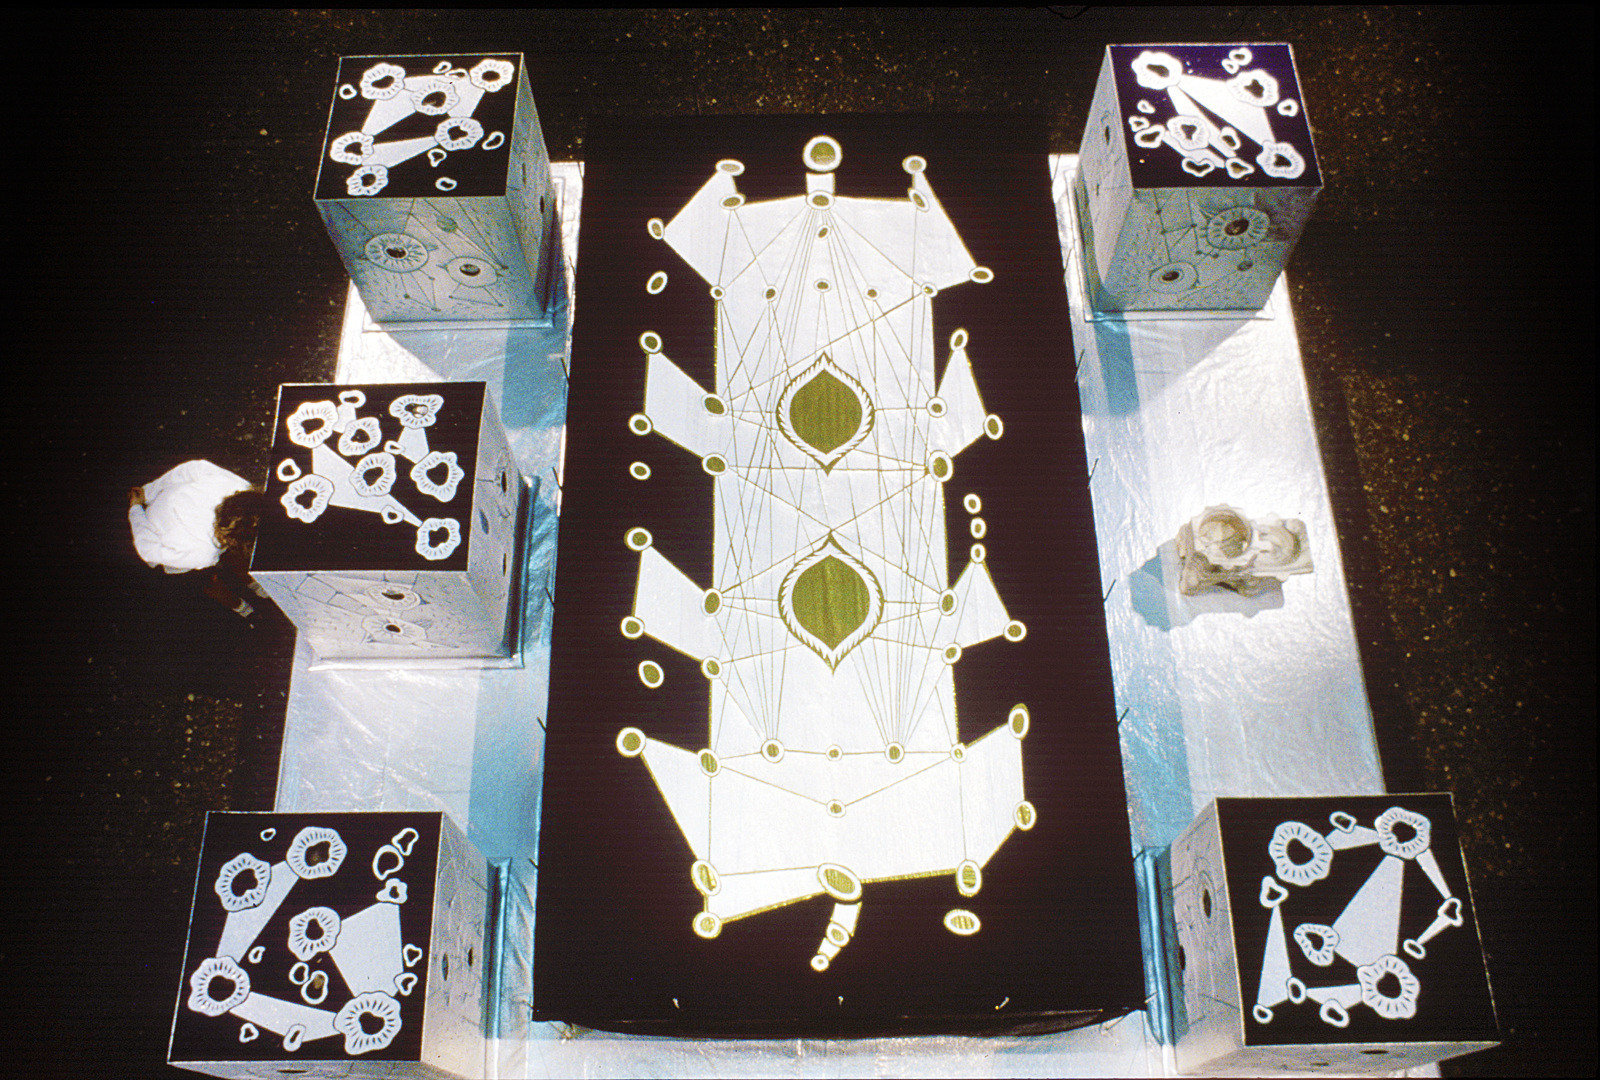 GERHARDT KNODEL Installation Work 1989-1997 Nightshade, Detroit Institute of Arts, 1995